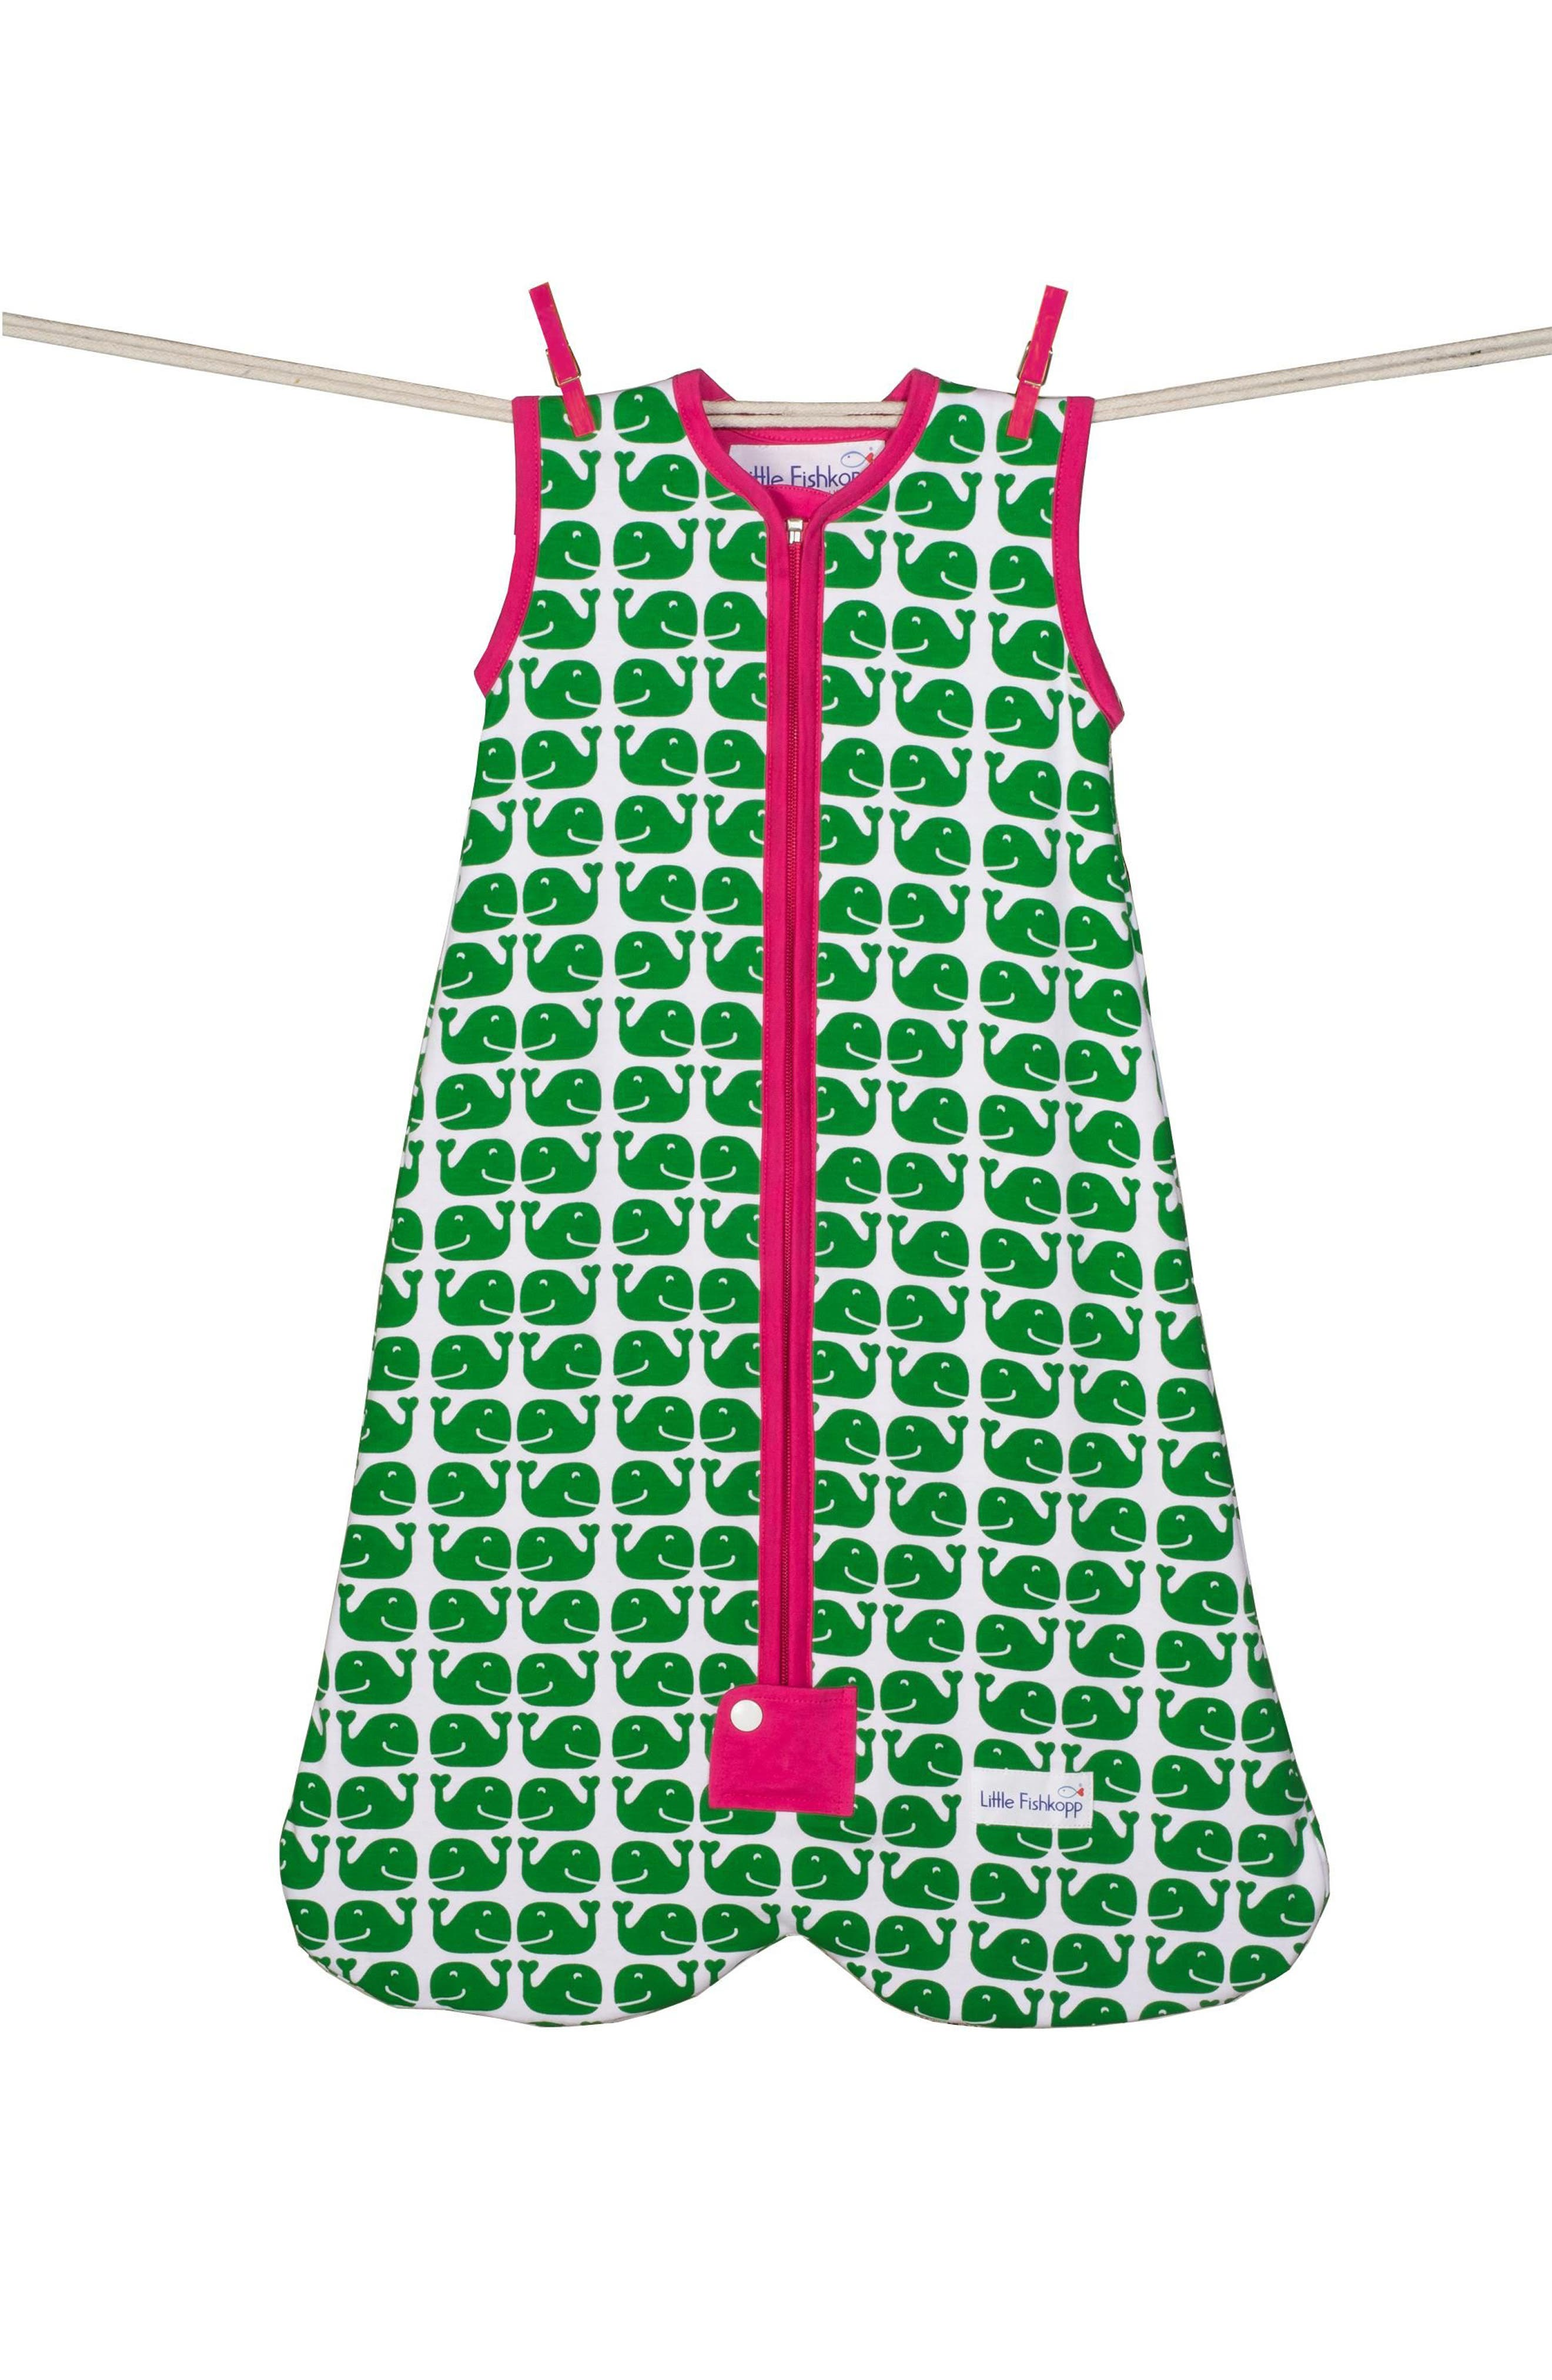 Whales Organic Cotton Wearable Blanket,                             Main thumbnail 1, color,                             300